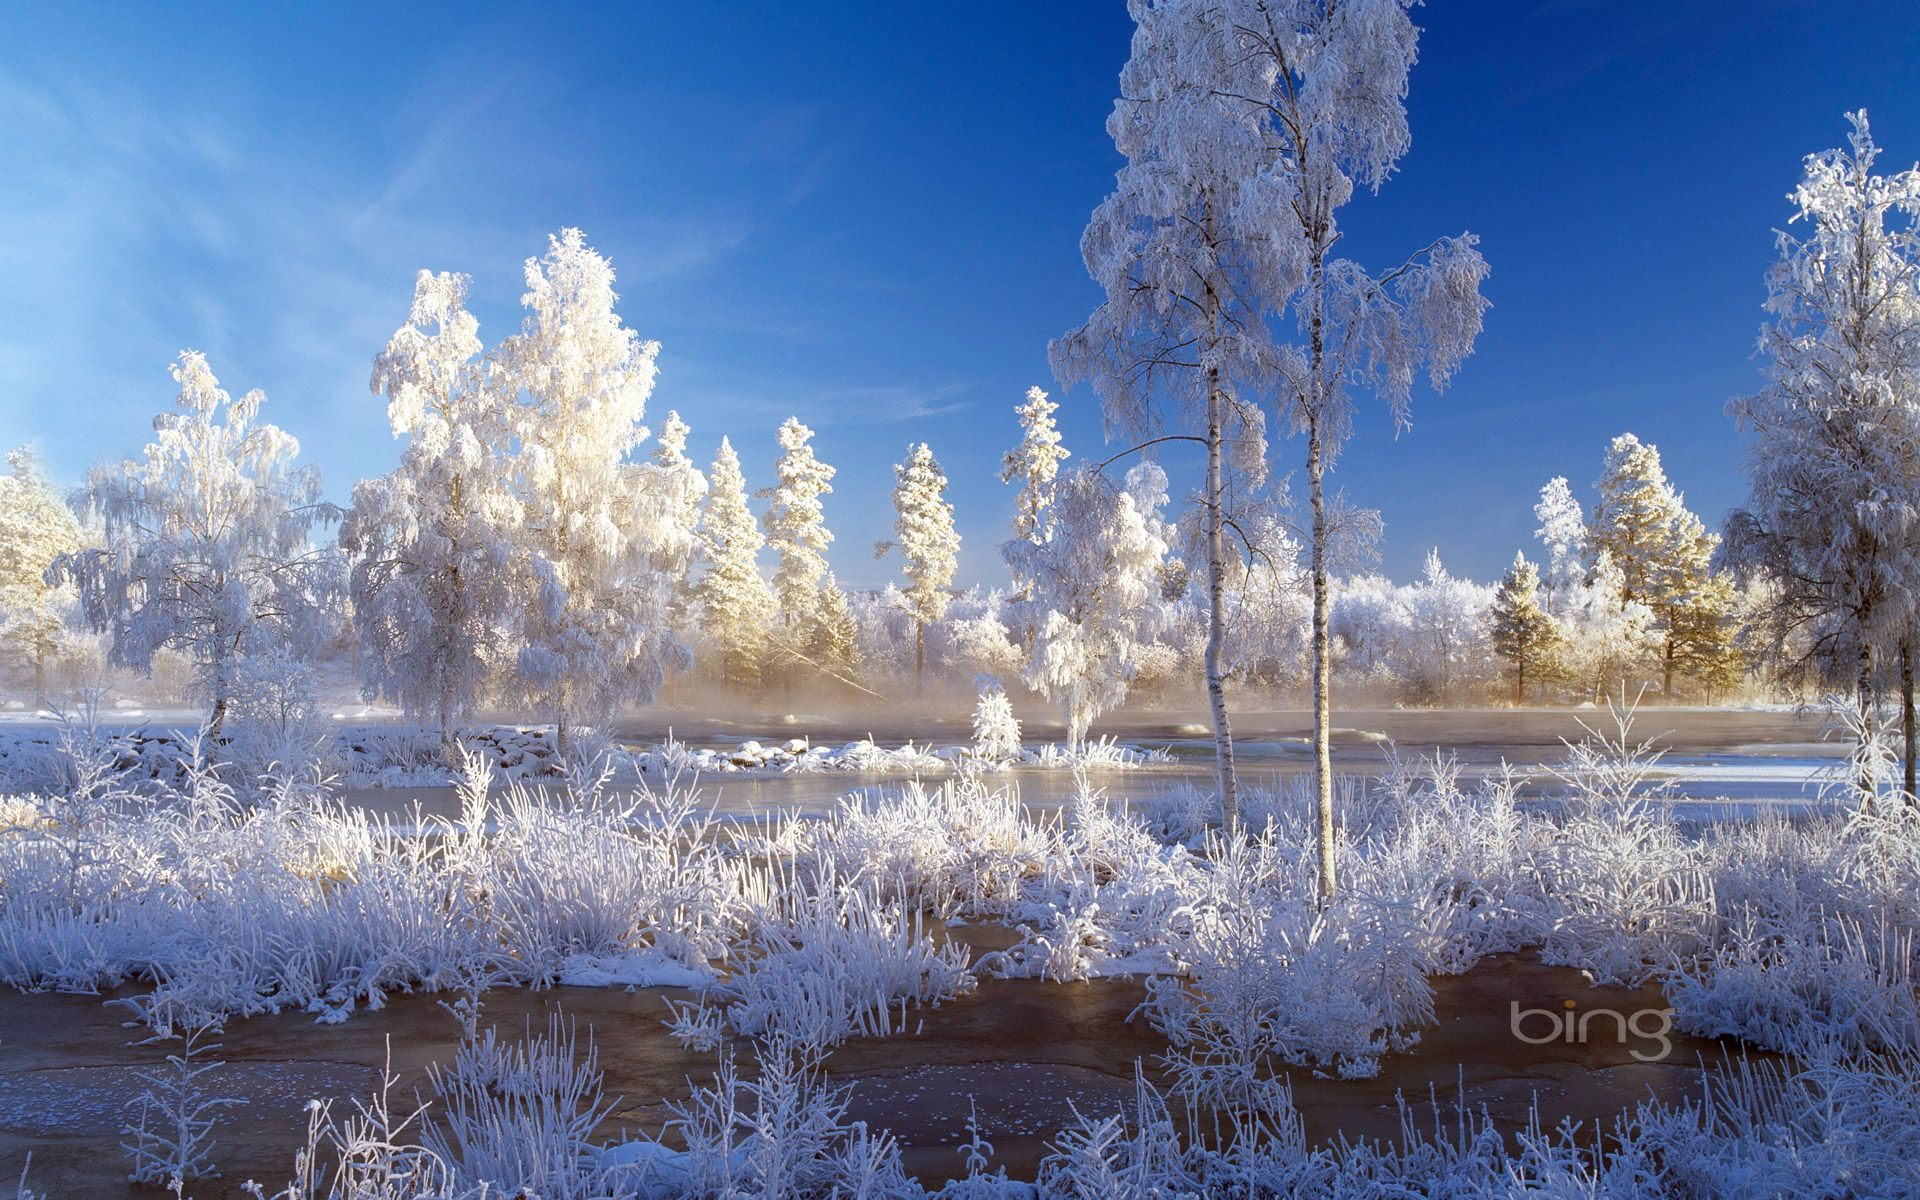 Weekly Bing wallpapers (25 to 31 December 2012) Winter